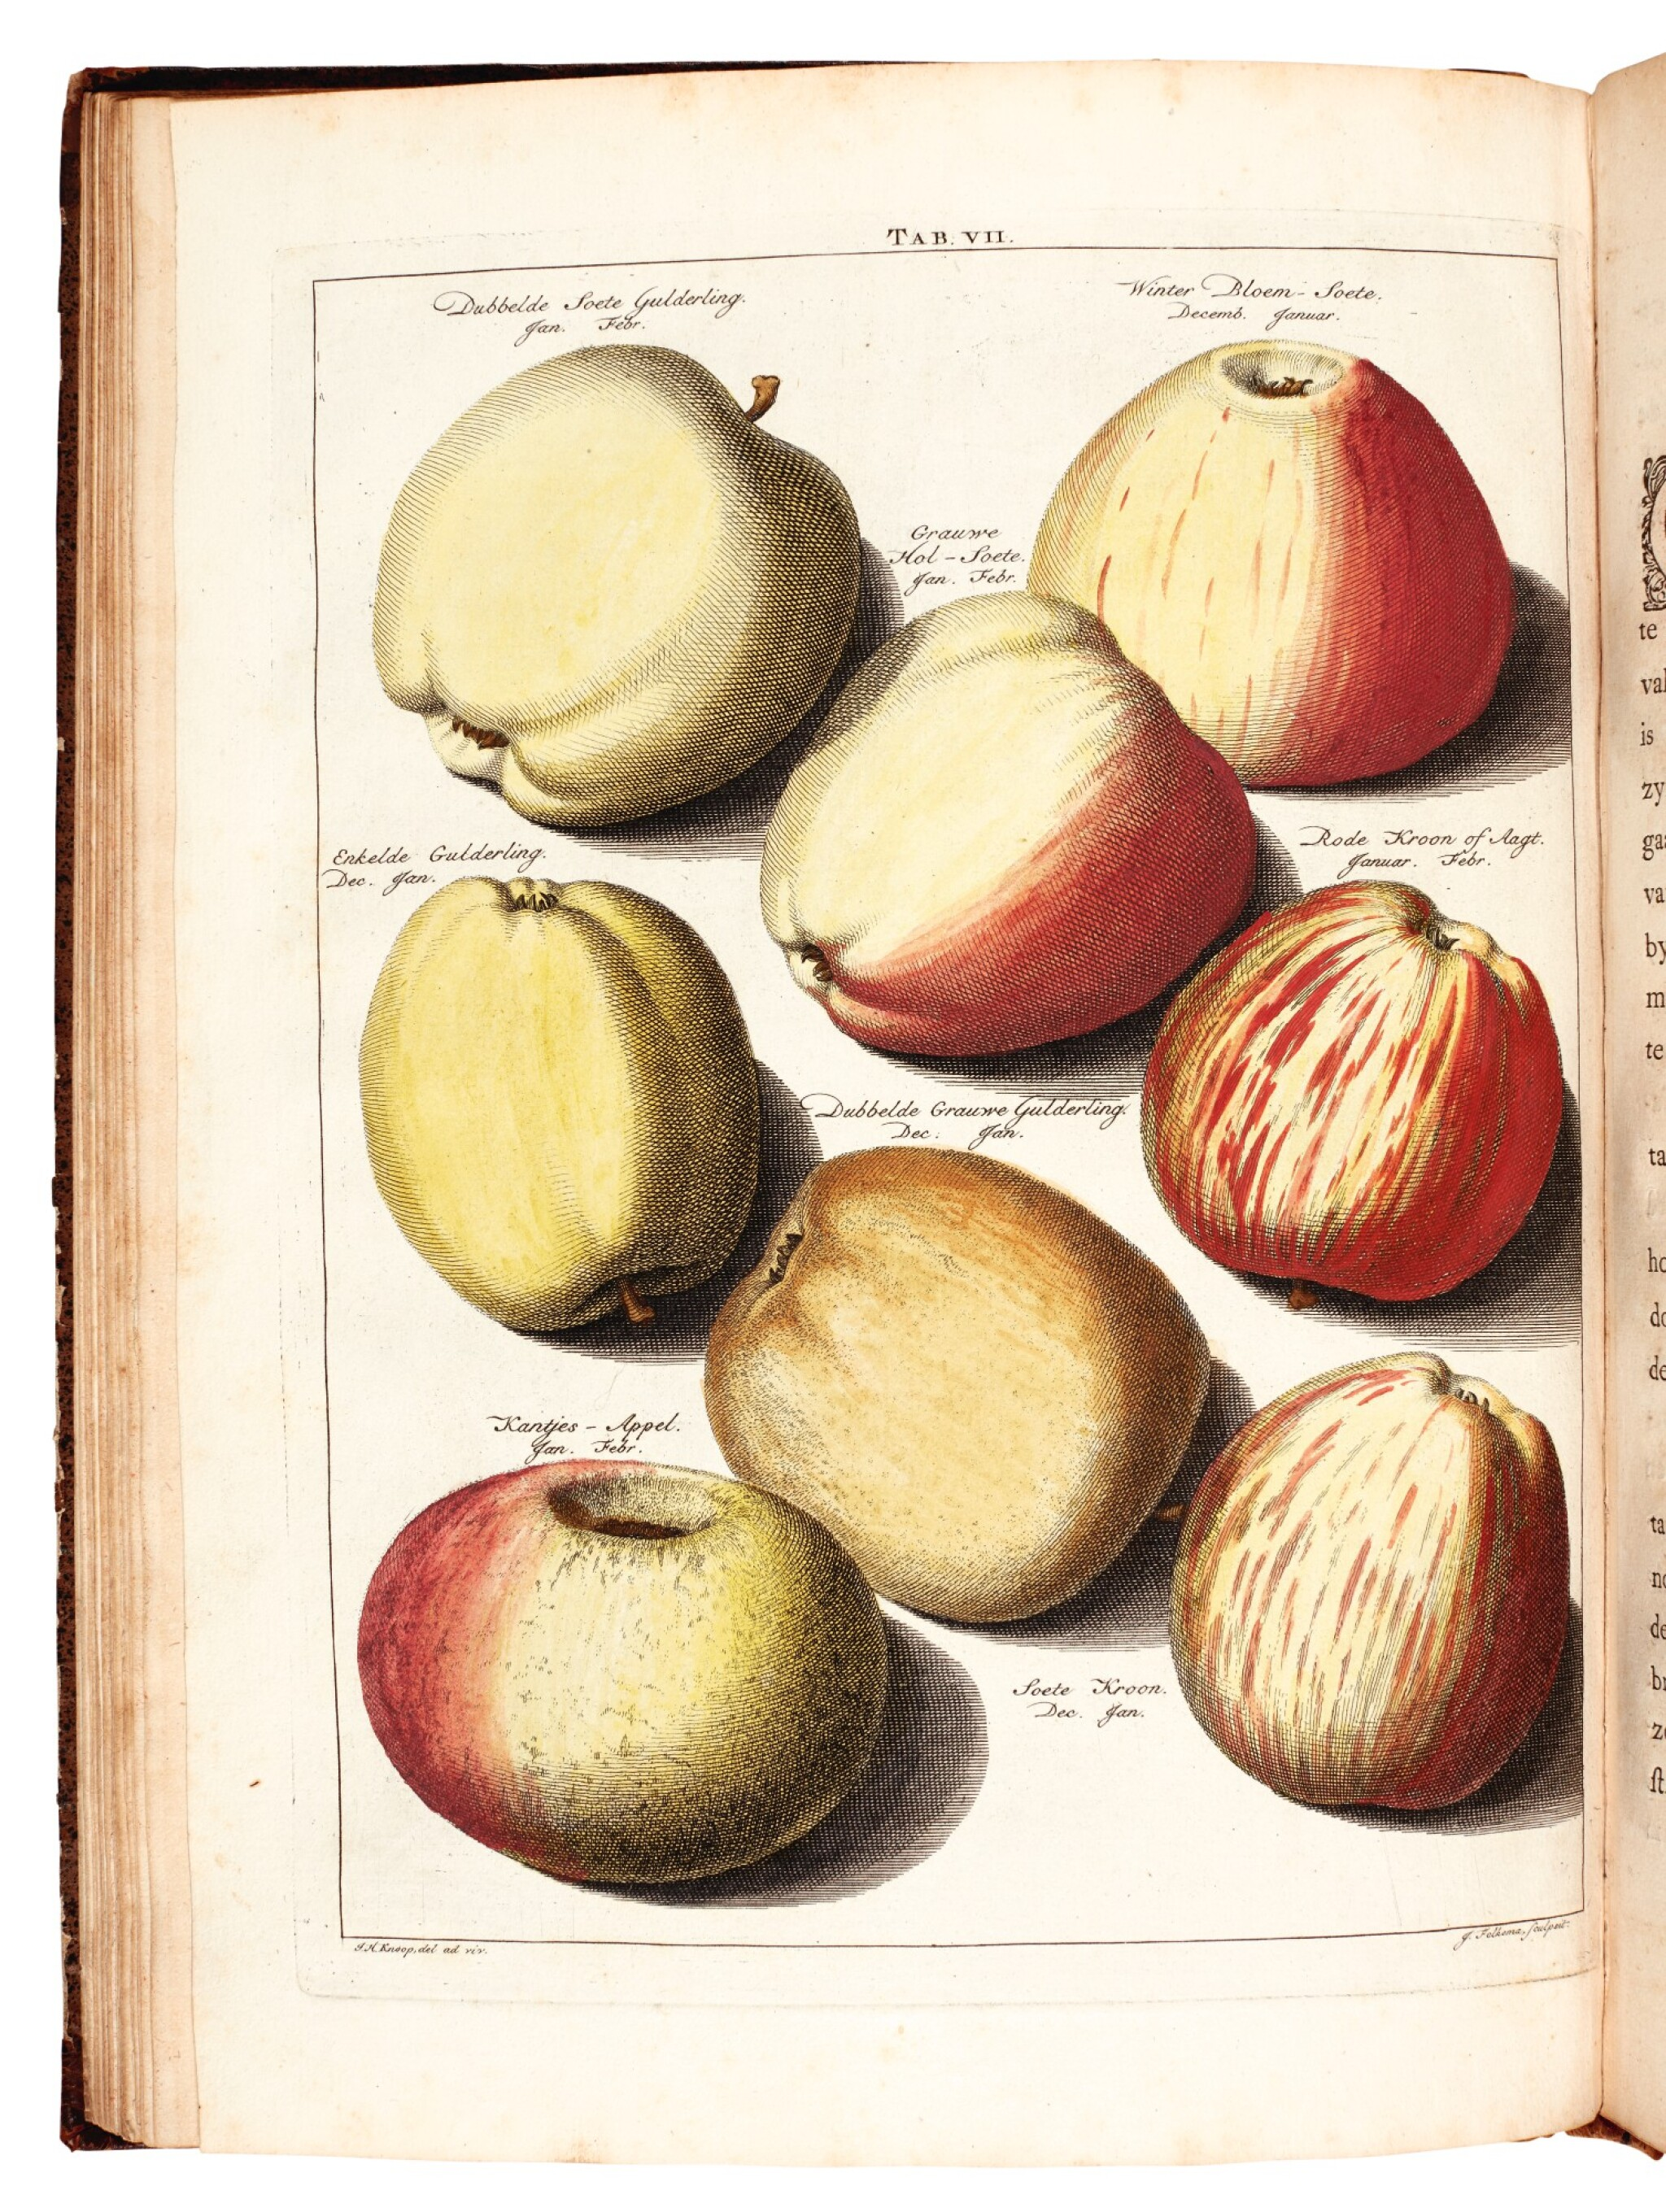 View full screen - View 1 of Lot 24. Knoop | Pomologia, Fructologia, Dendrologia, 1758-1763, 3 volumes.